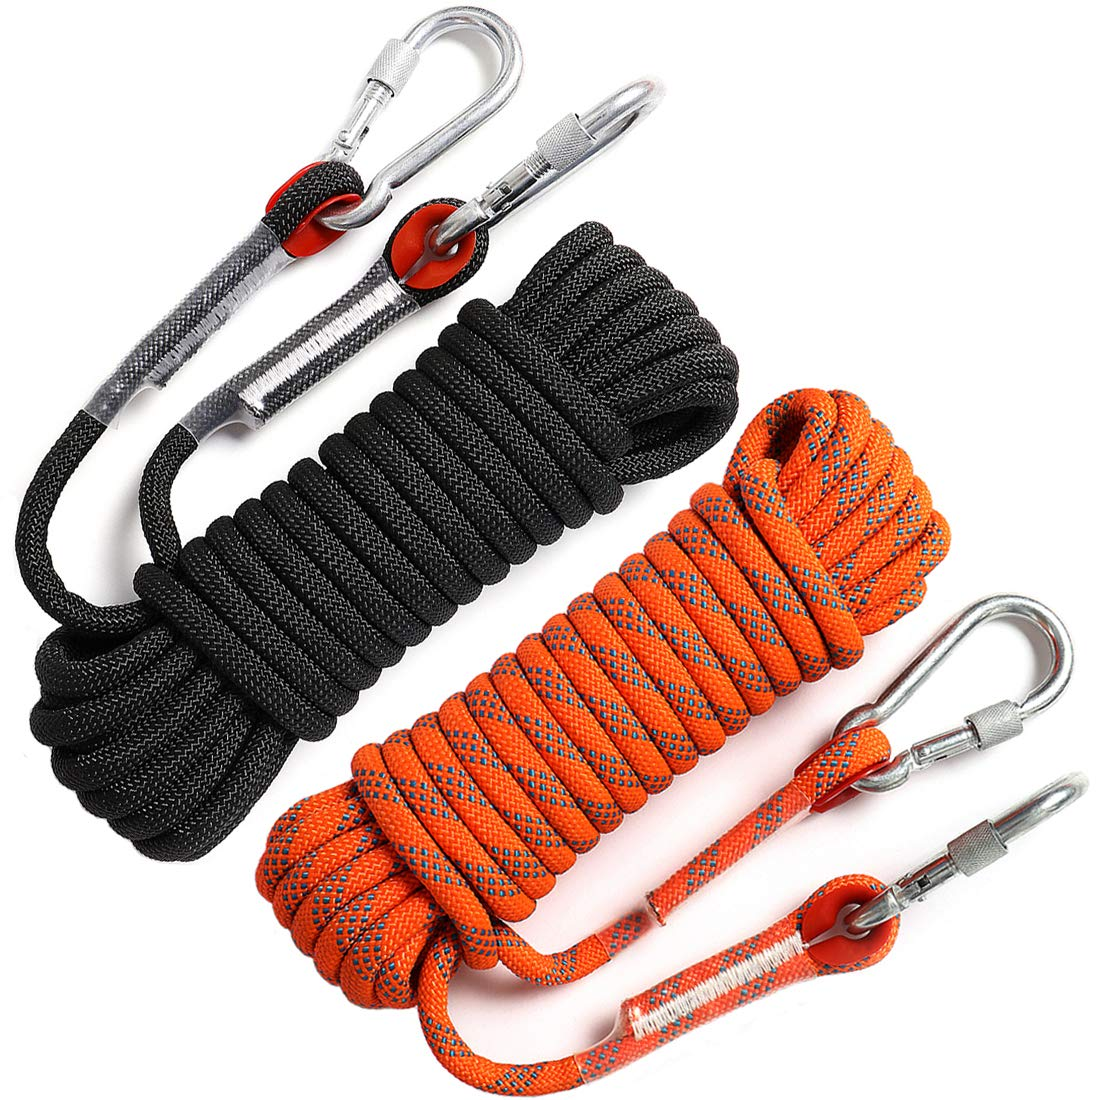 GINEE Static Climbing Rope;Diam 10mm,16mm;Length 35FT,50FT,100FT